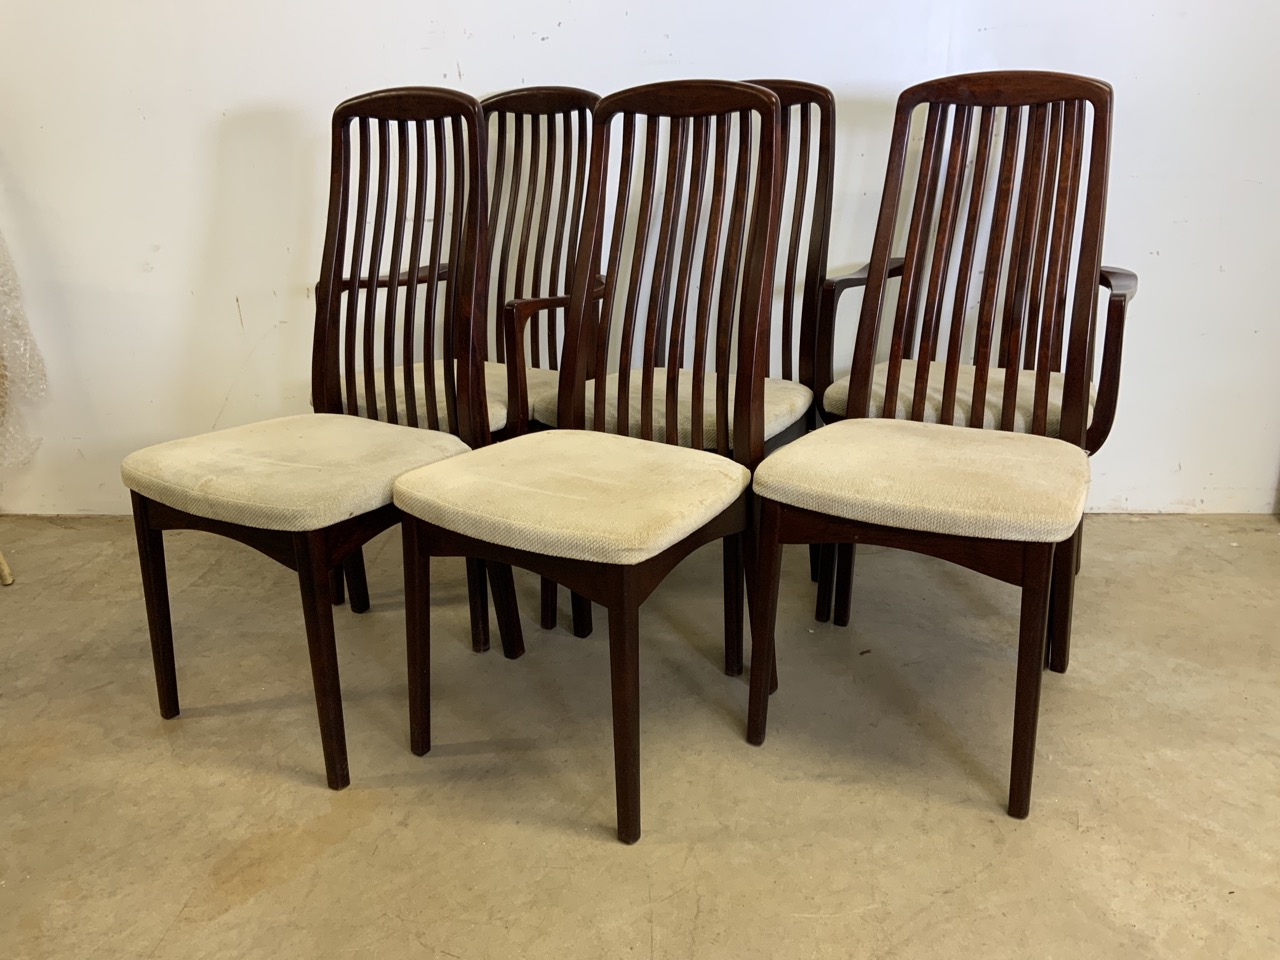 A set of six mid century rosewood Scandinavian dining chairs by Svegards Markaryd. To include two